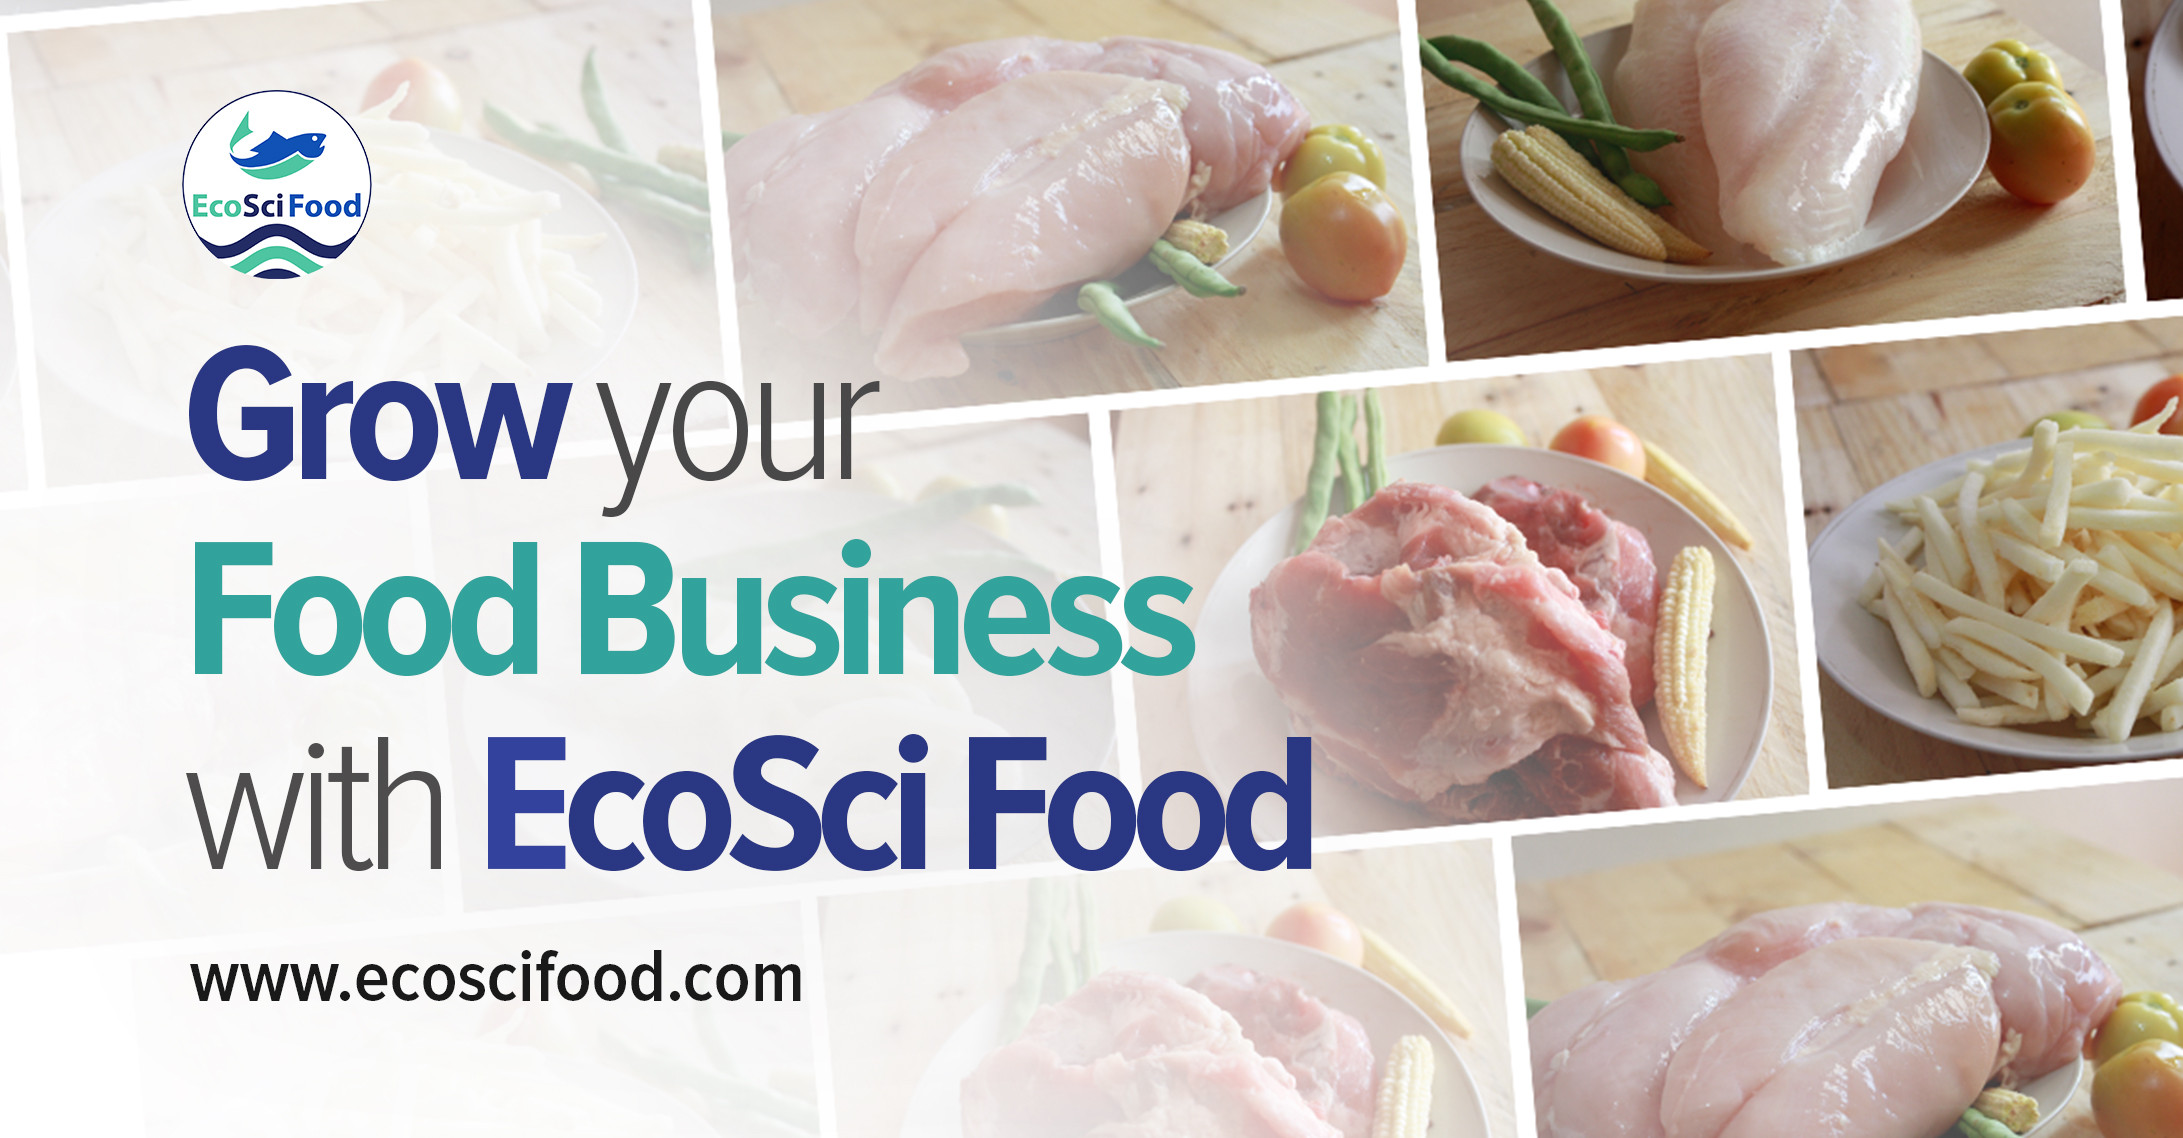 EcoSci Food | Frozen Seafood and Meat Supplier